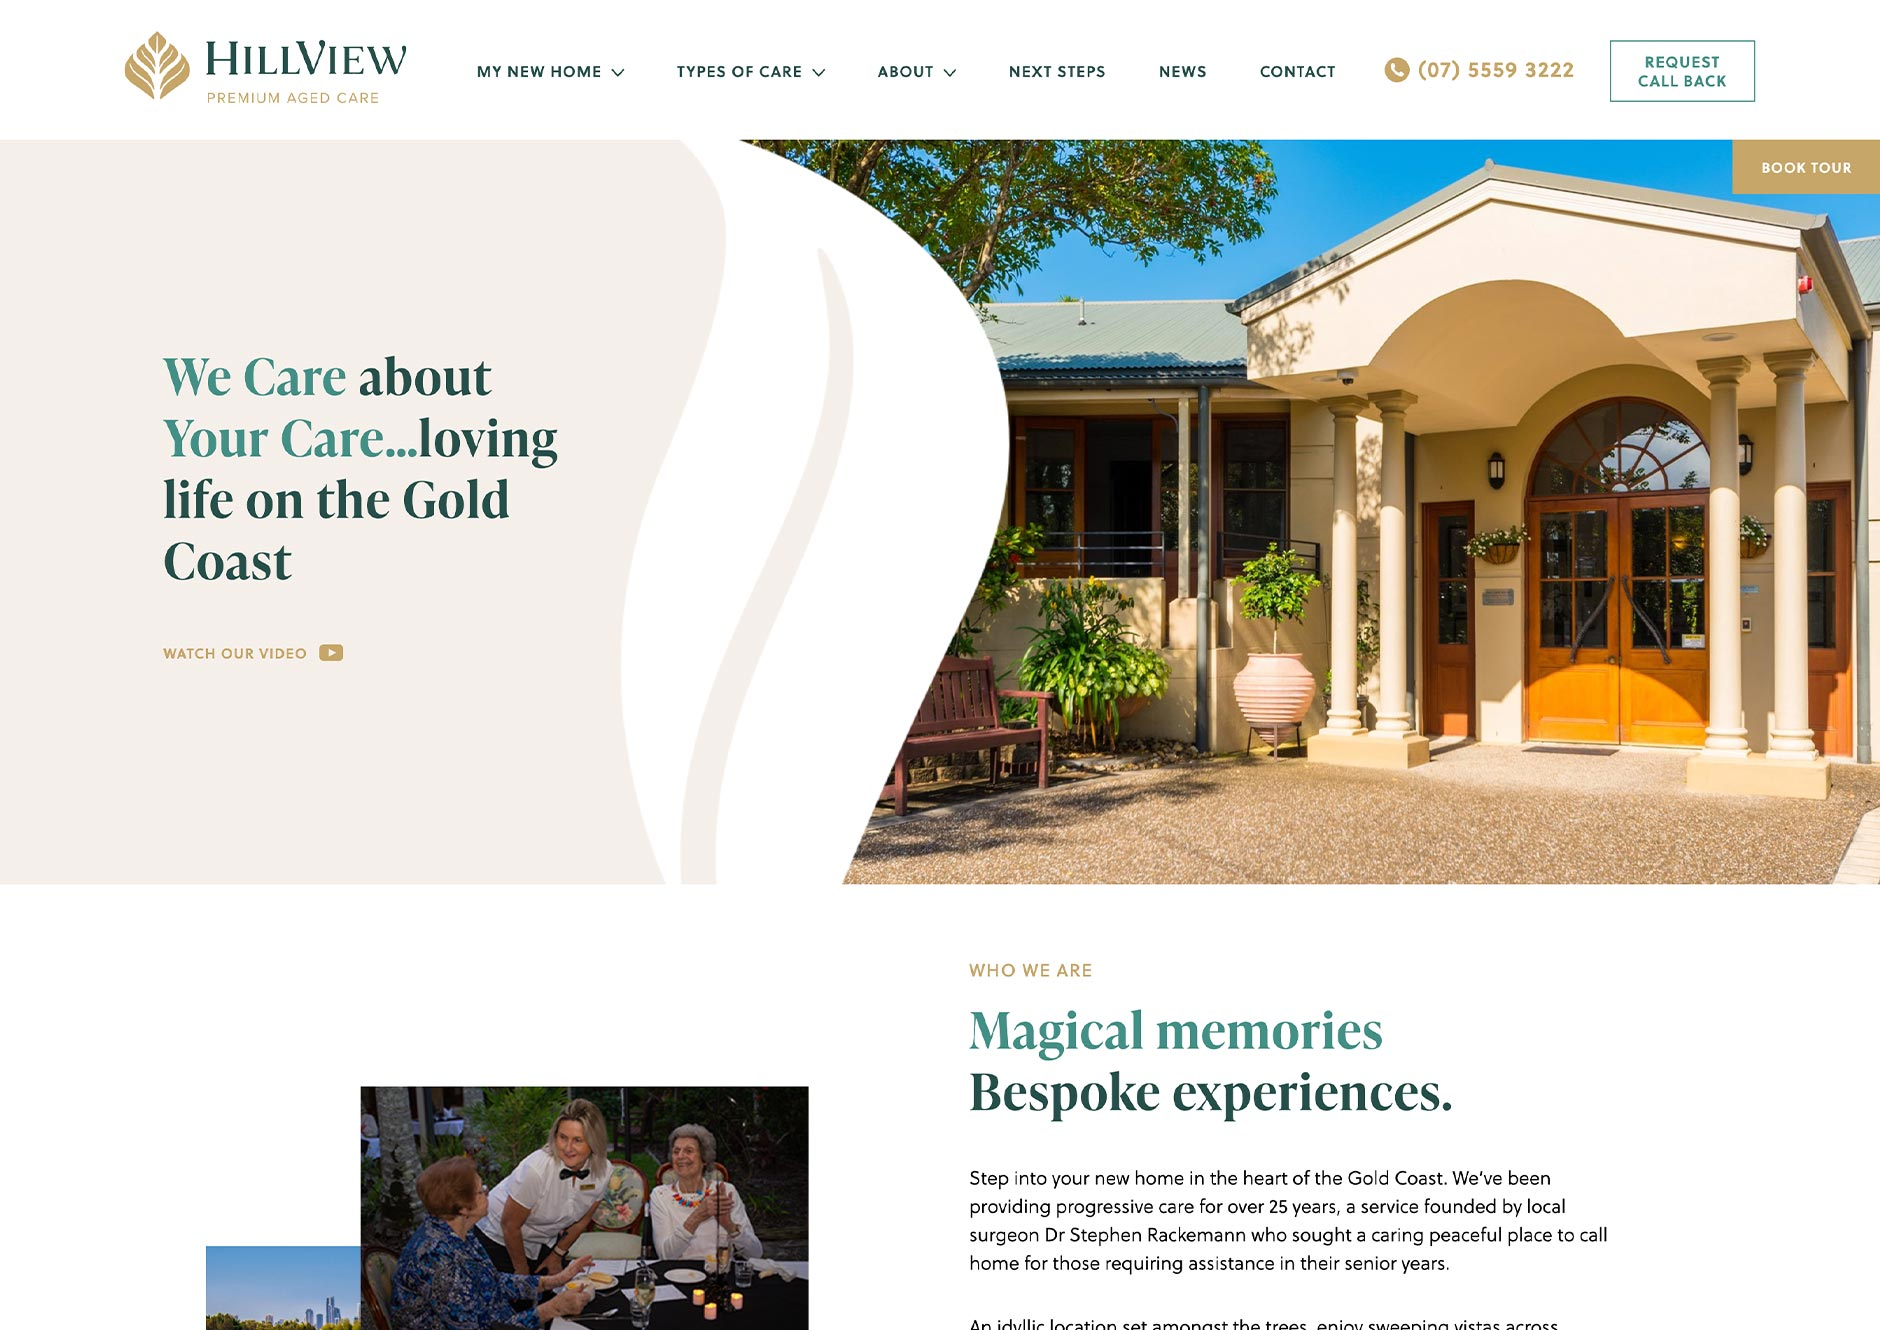 HillView Care